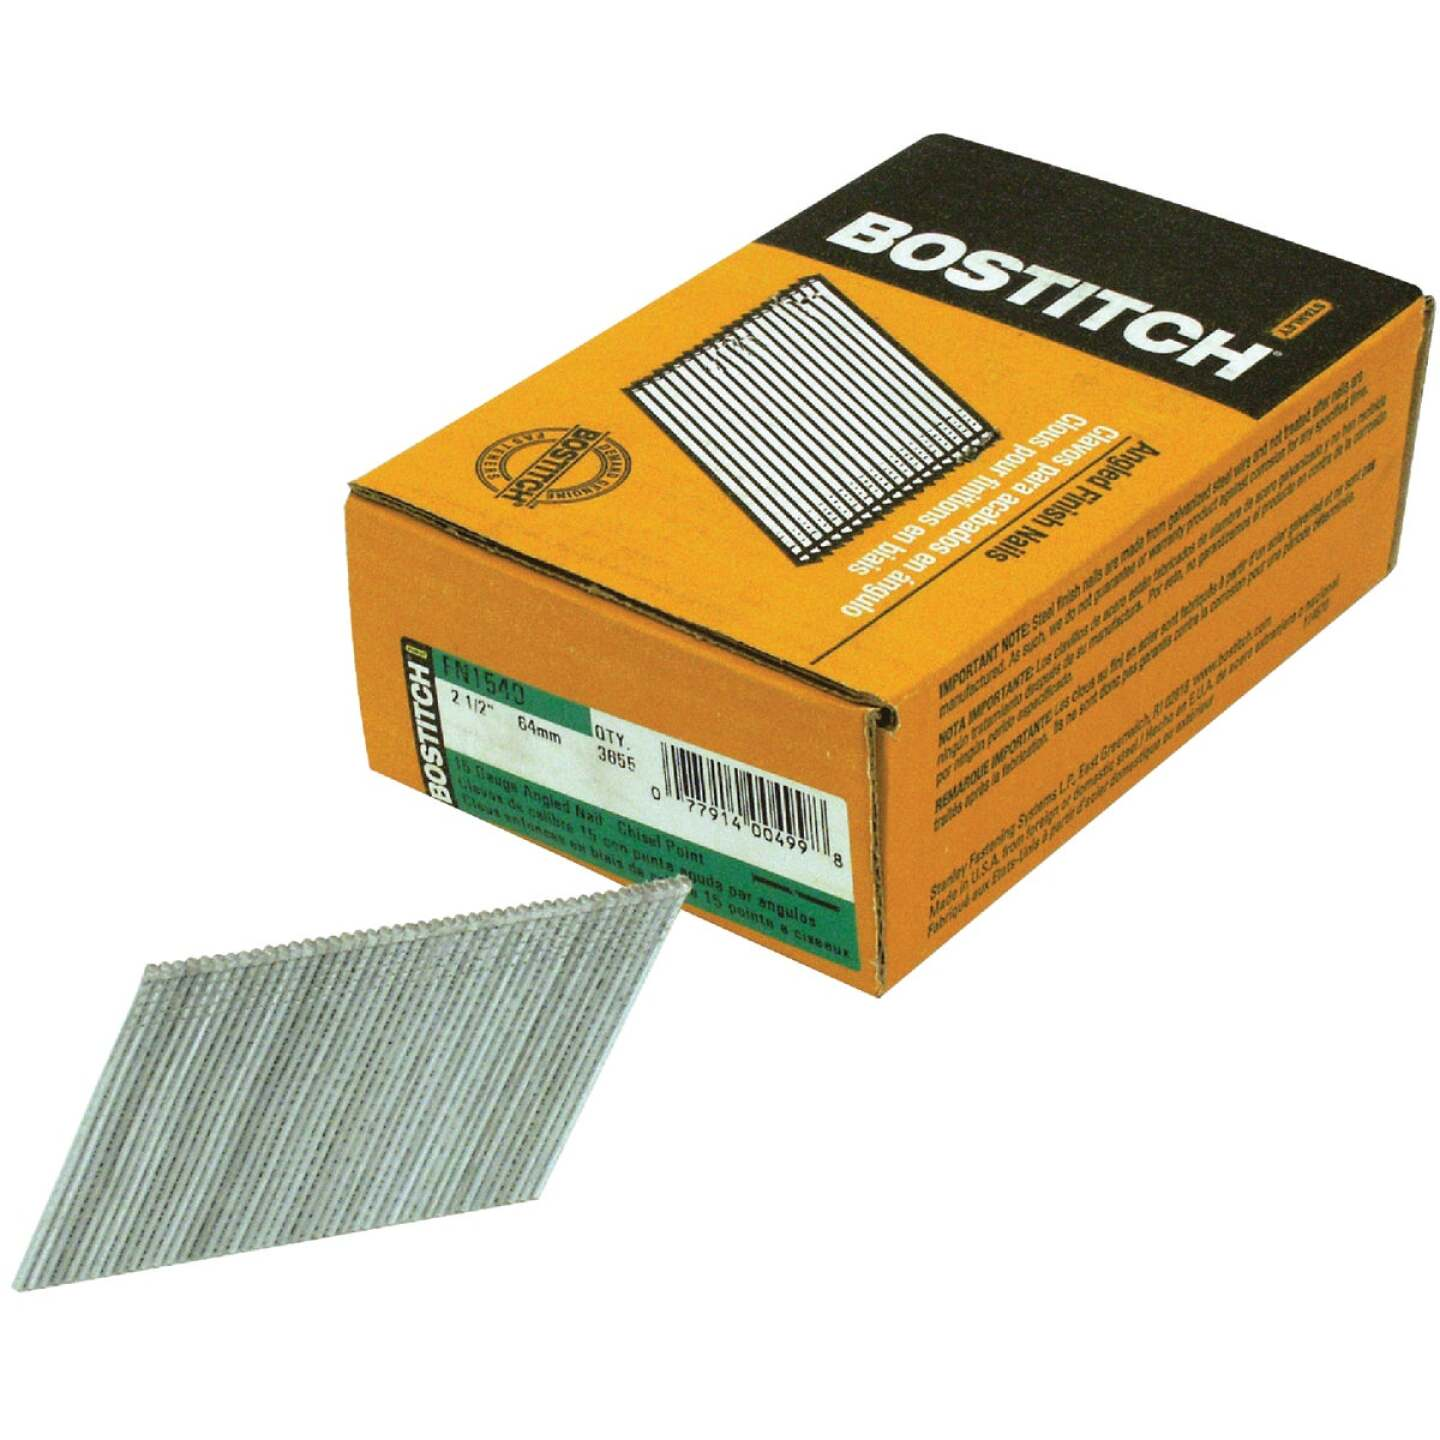 Bostitch 15-Gauge Coated 25 Degree FN-Style Angled Finish Nail, 2-1/2 In. (3655 Ct.) Image 1